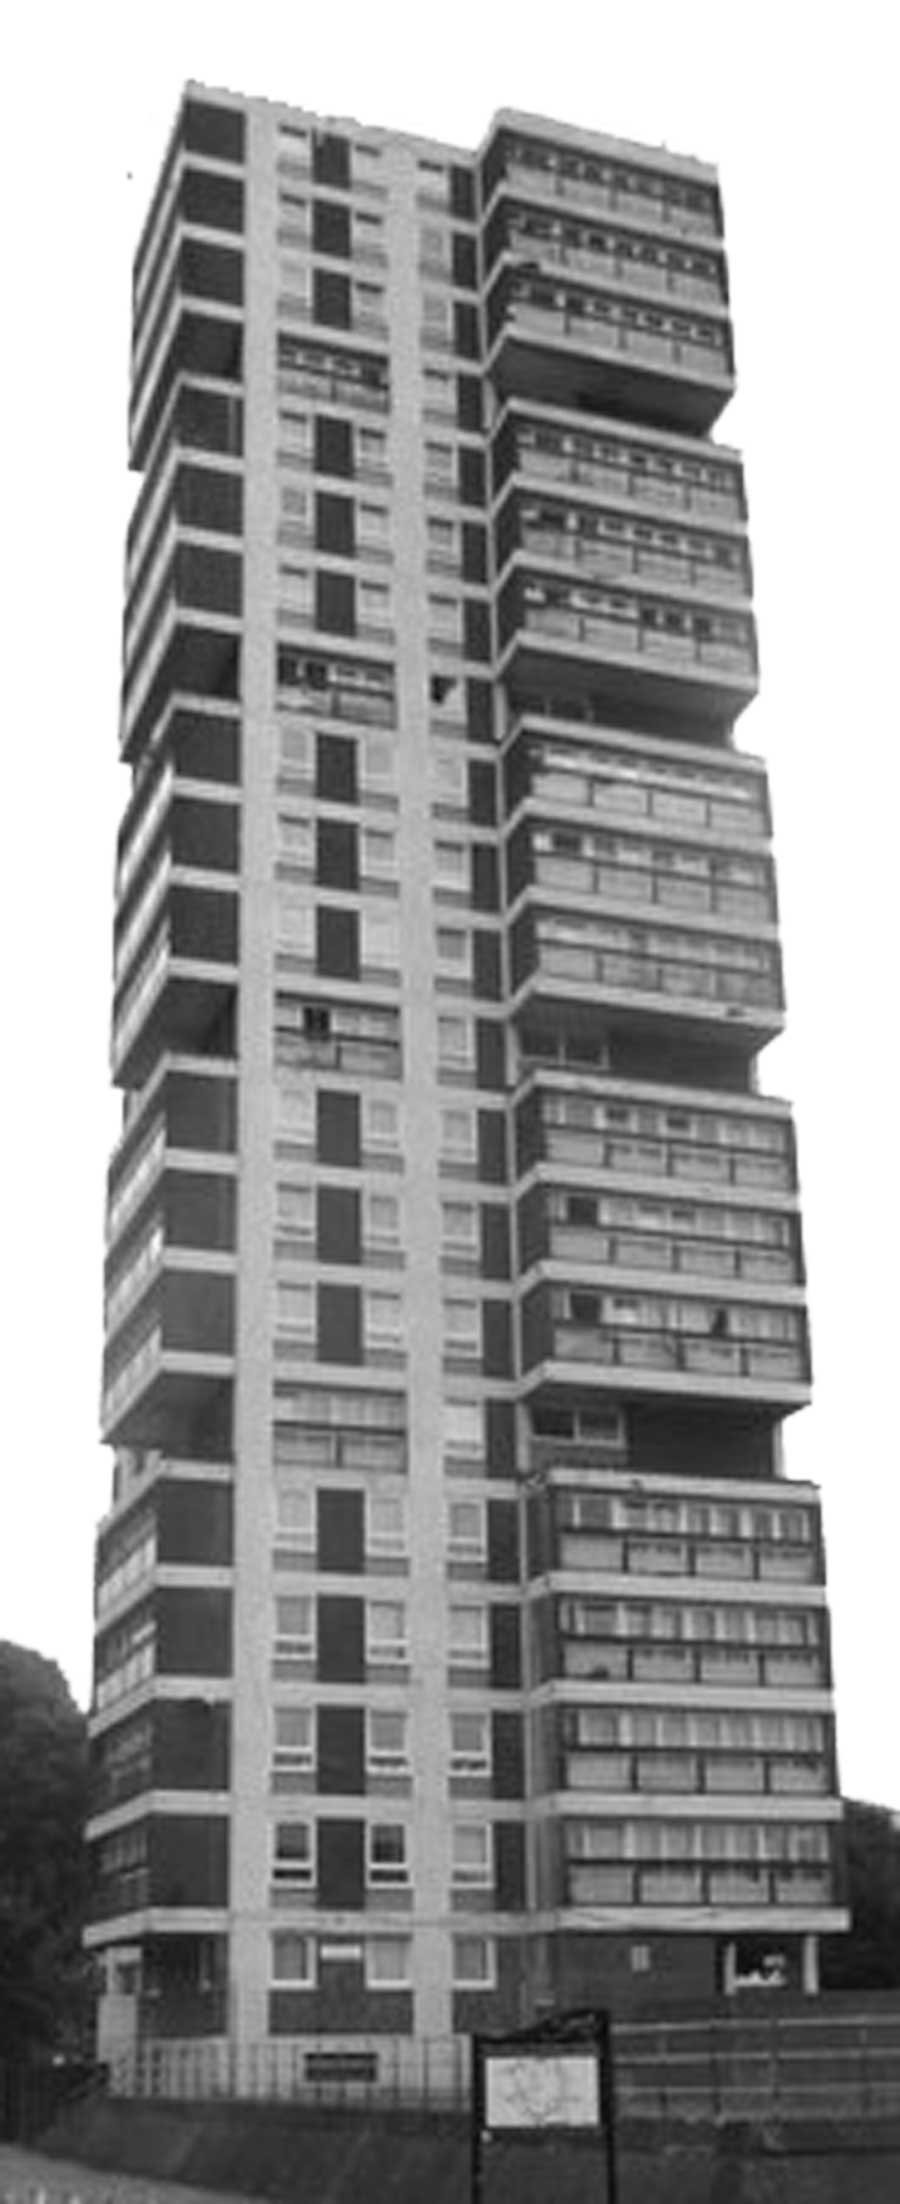 Aspects of British culture: photo of South London tower block